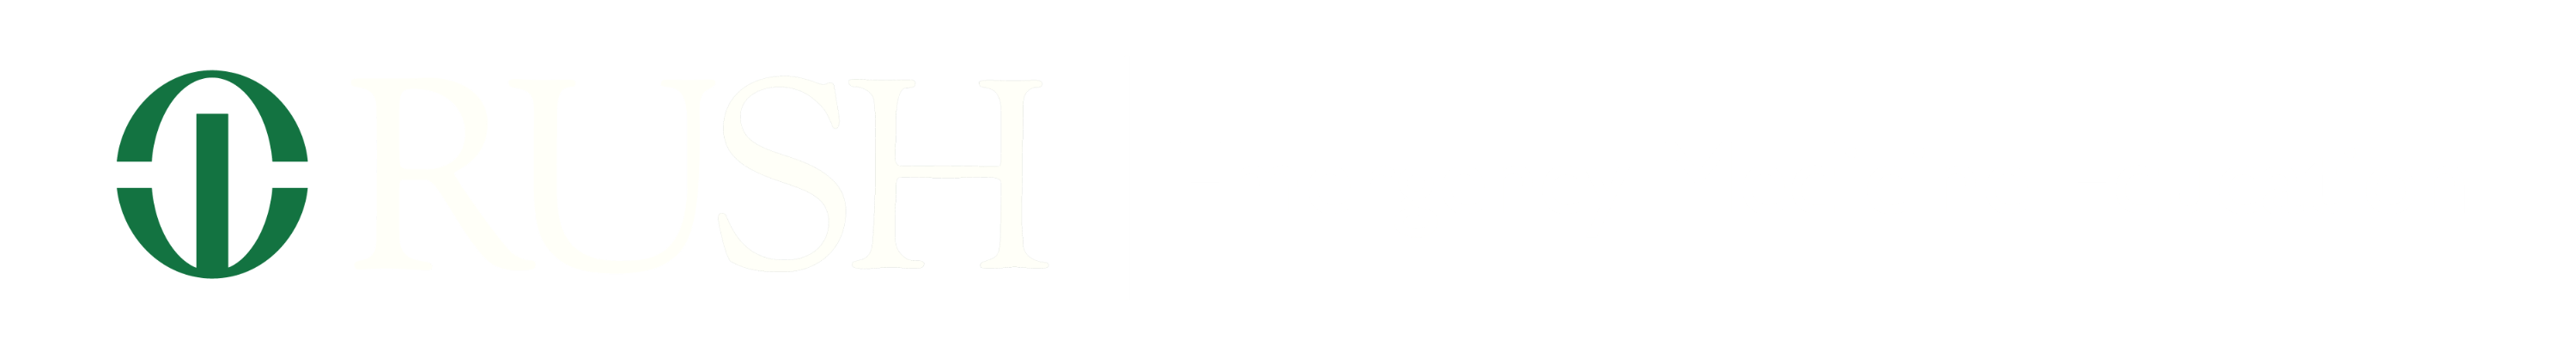 Rush Emergency Medicine